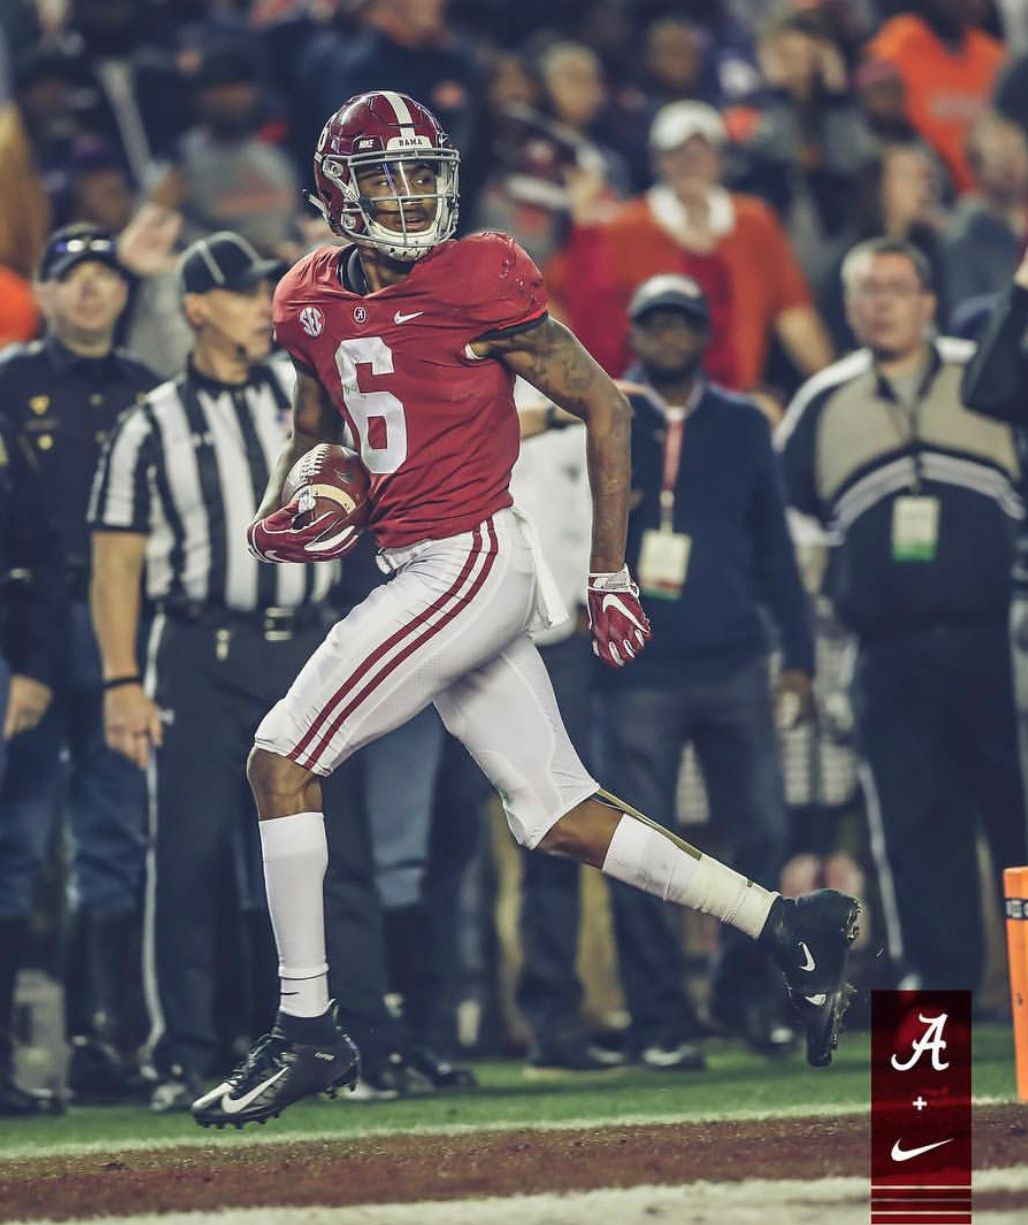 Devonta Smith Alabama 52 Auburn 21 In The 2018 Iron Bowl Alabama Rolltide Bama Builtbybama Rtr Crim Bama Football Alabama Crimson Tide Alabama Football